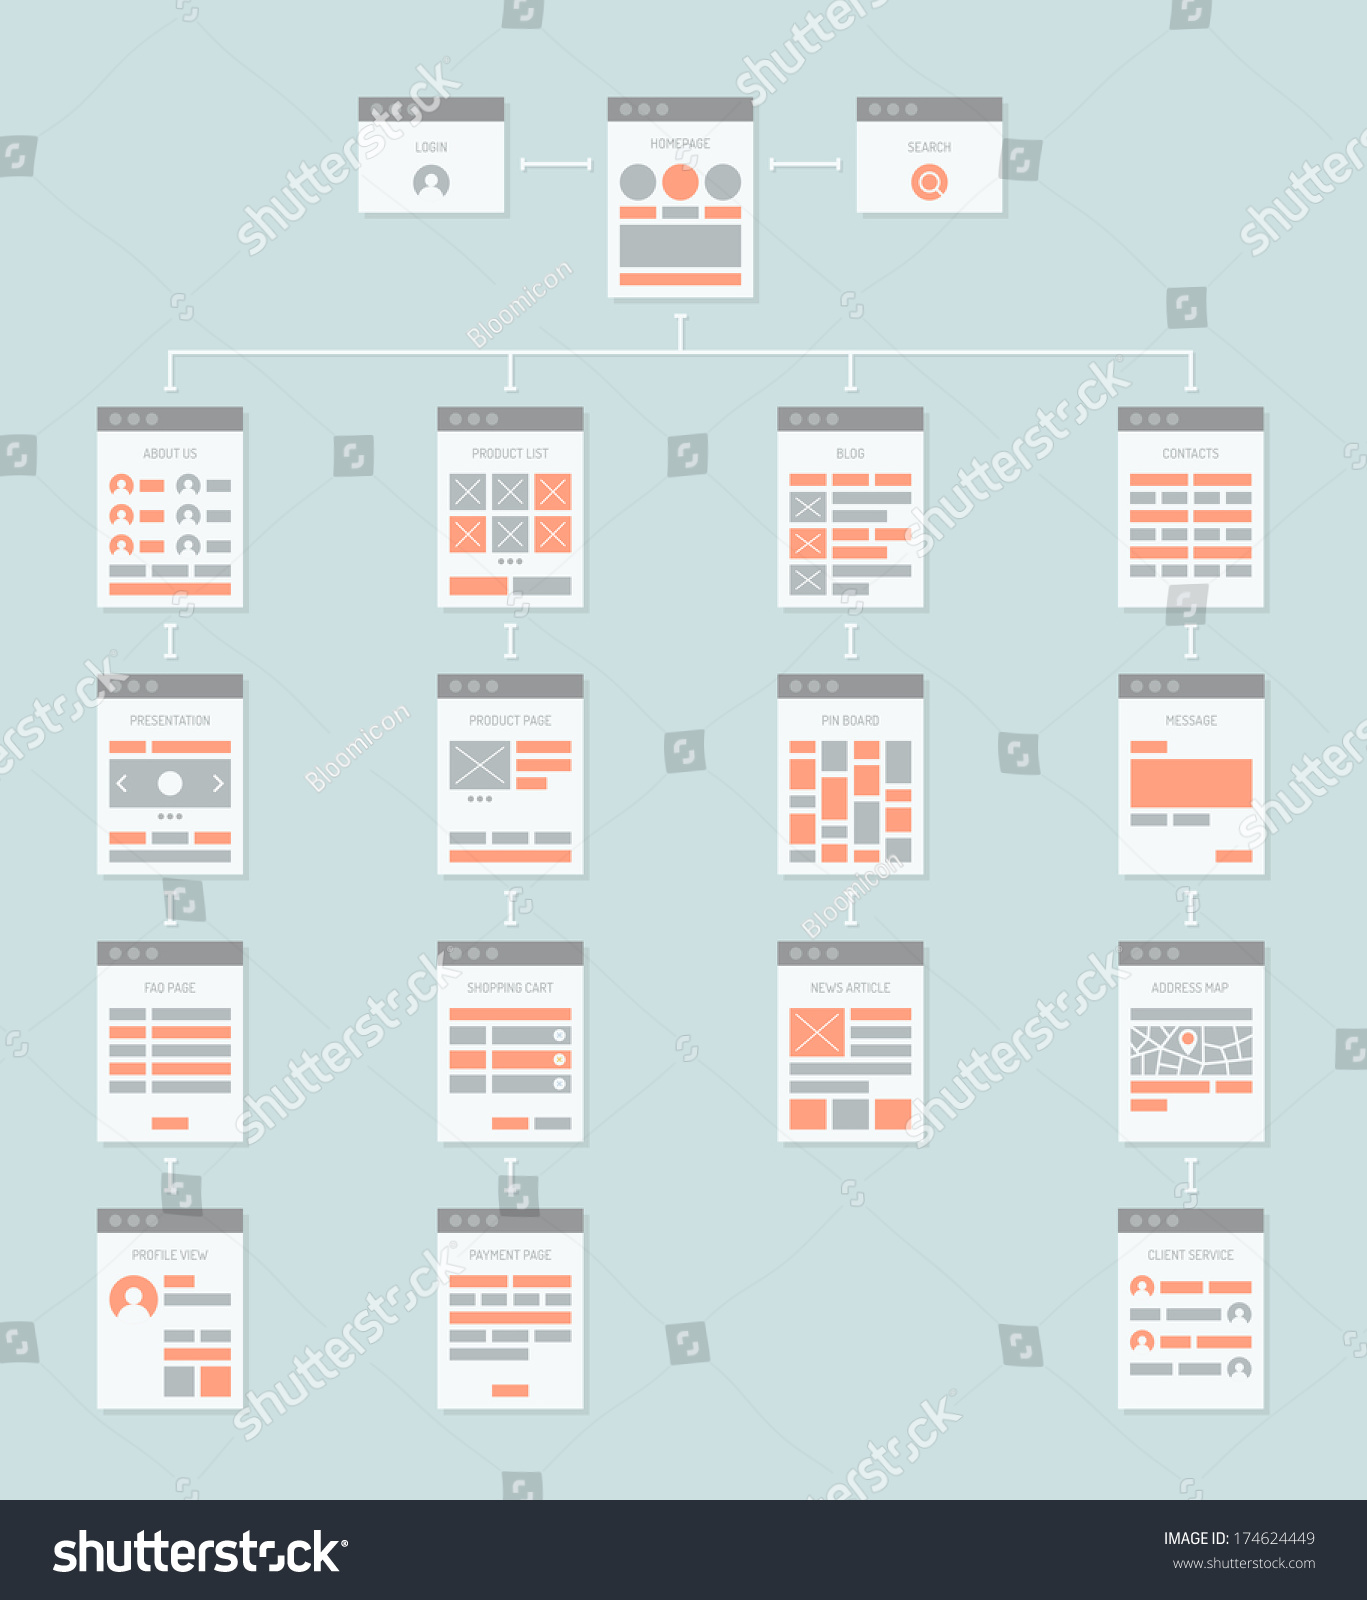 Sitemap: Flat Design Style Modern Vector Illustration Concept Of Abstract Website Flowchart Sitemap